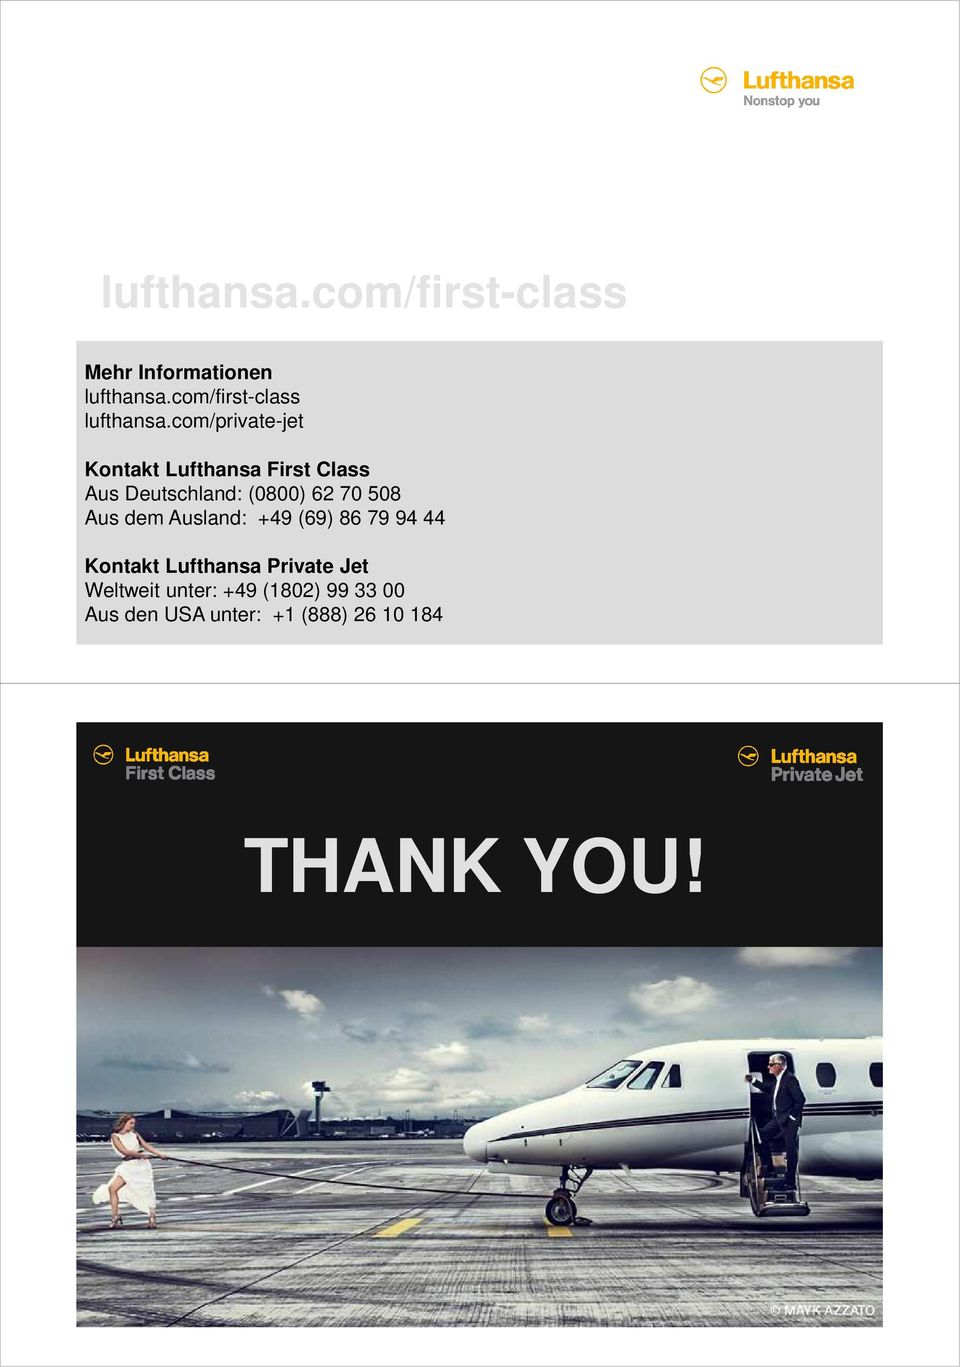 com/private-jet Kontakt Lufthansa First Class Aus Deutschland: (0800) 62 70